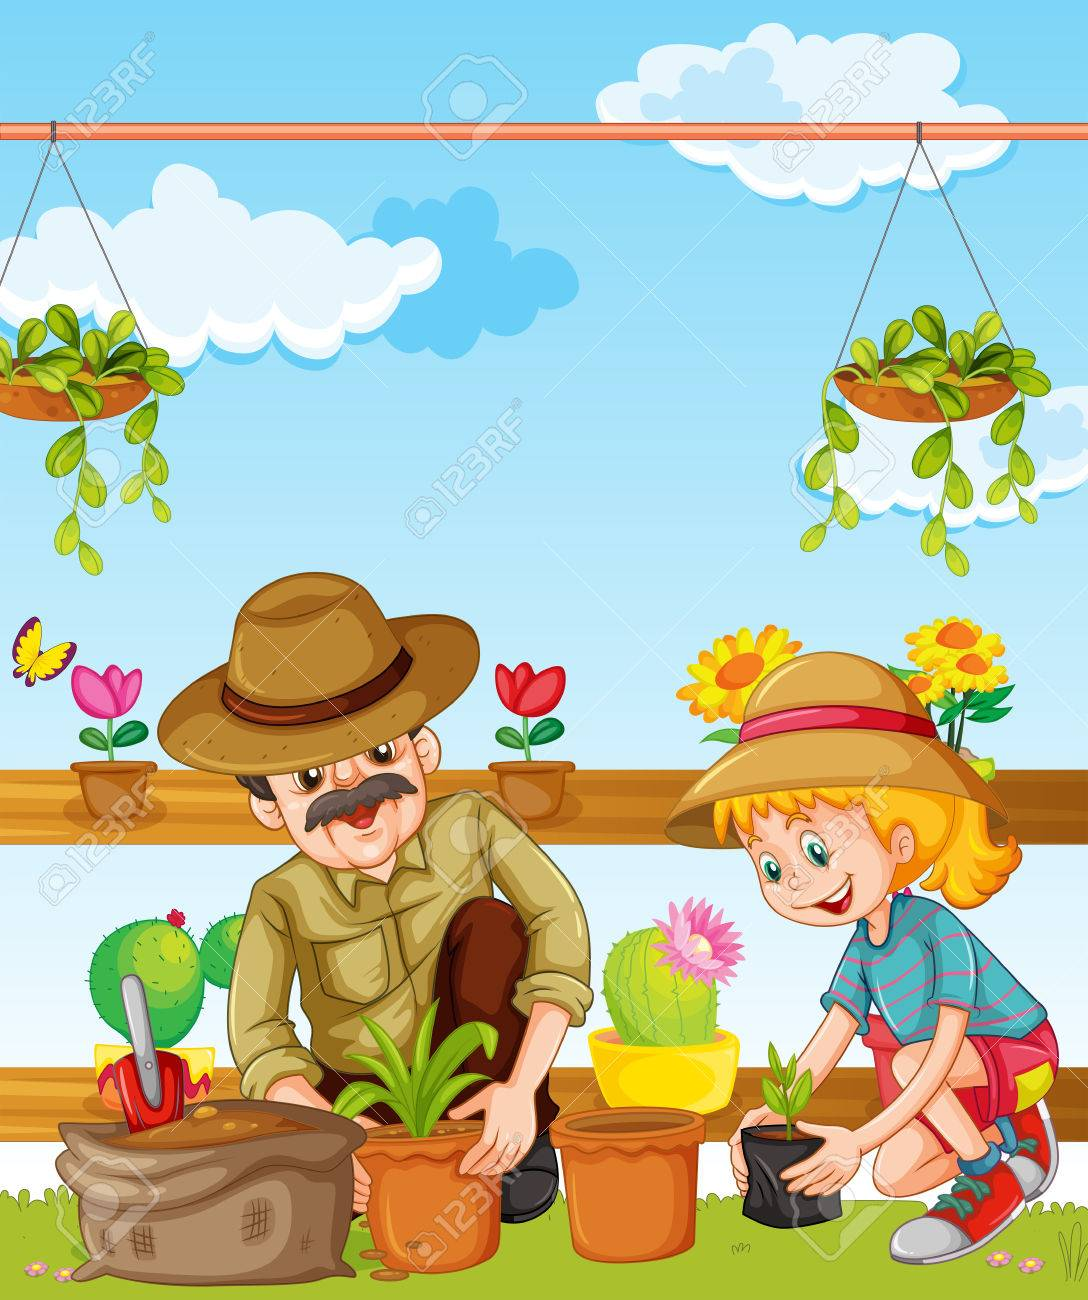 Use These To Grow A Garden To Feed Your Entire Family - Vegetable Garden  Cartoon Clipart (#5281509) - PikPng